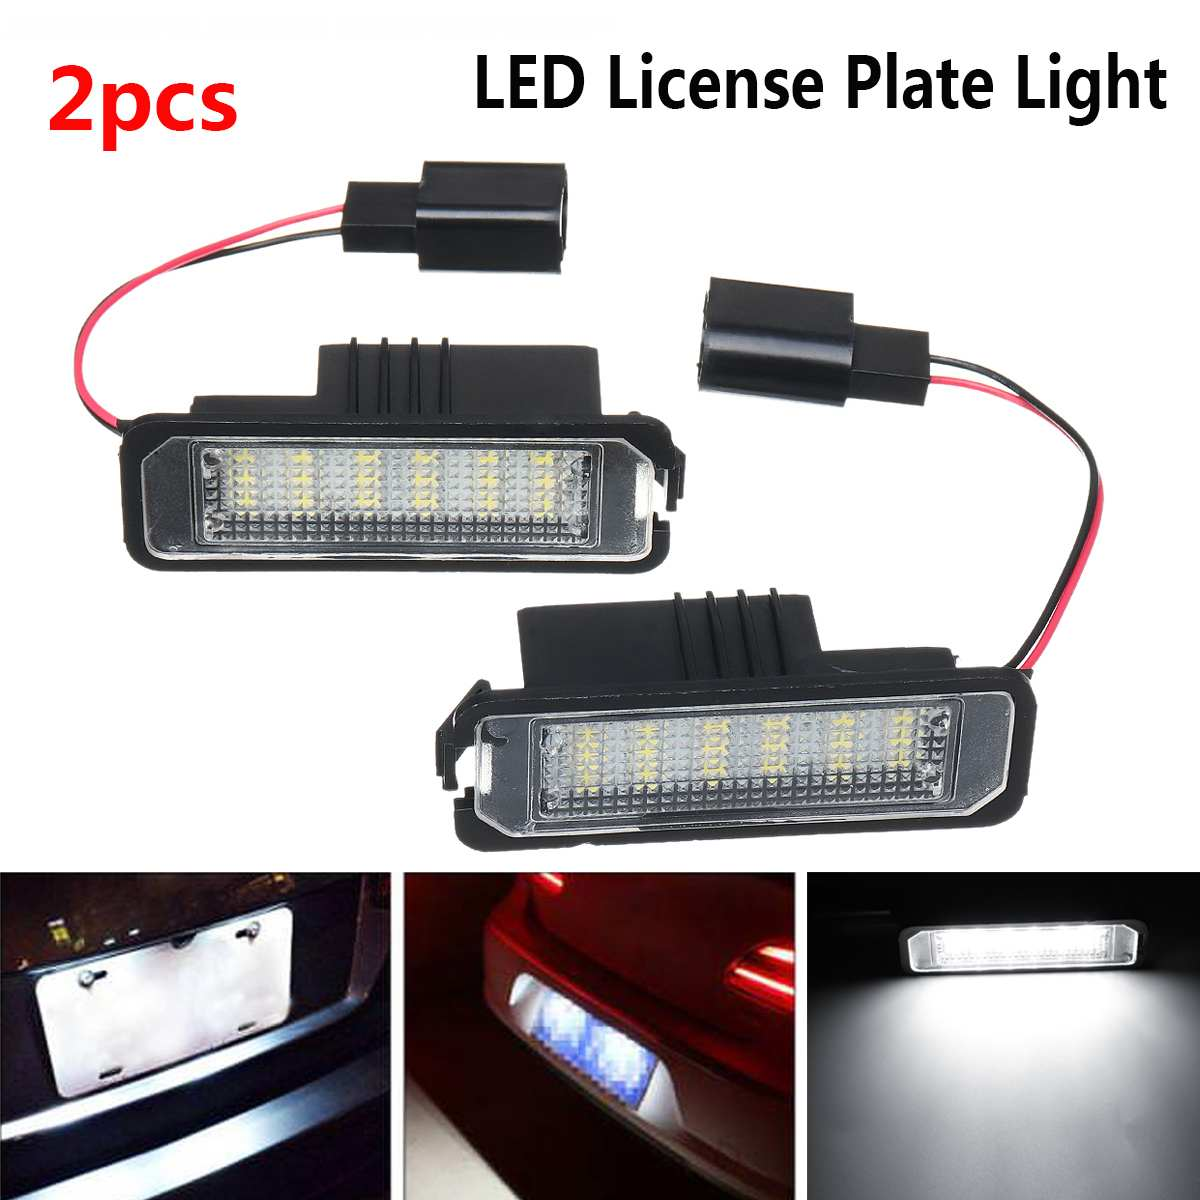 2Pcs 12V 5W LED Number License Plate Light Lamps for VW GOLF 4 6 Polo 9N for Passat Car License Plate Lights Exterior Access|License Plate|   -